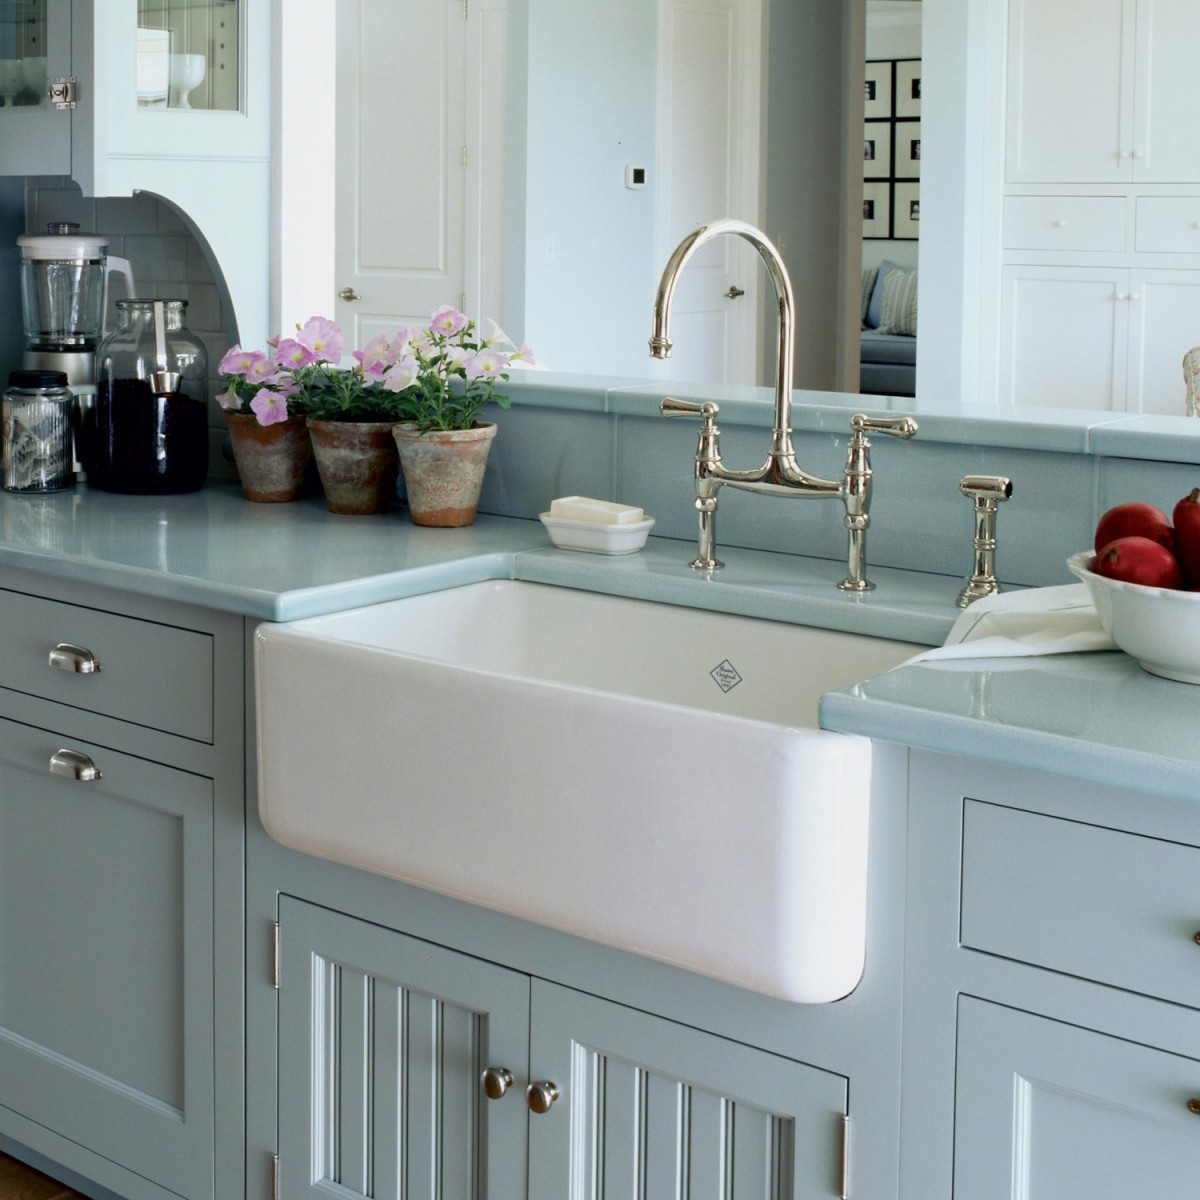 Shaws Butler 800 fireclay butler sink. Distributed in Australia by Luxe by Design, Brisbane.